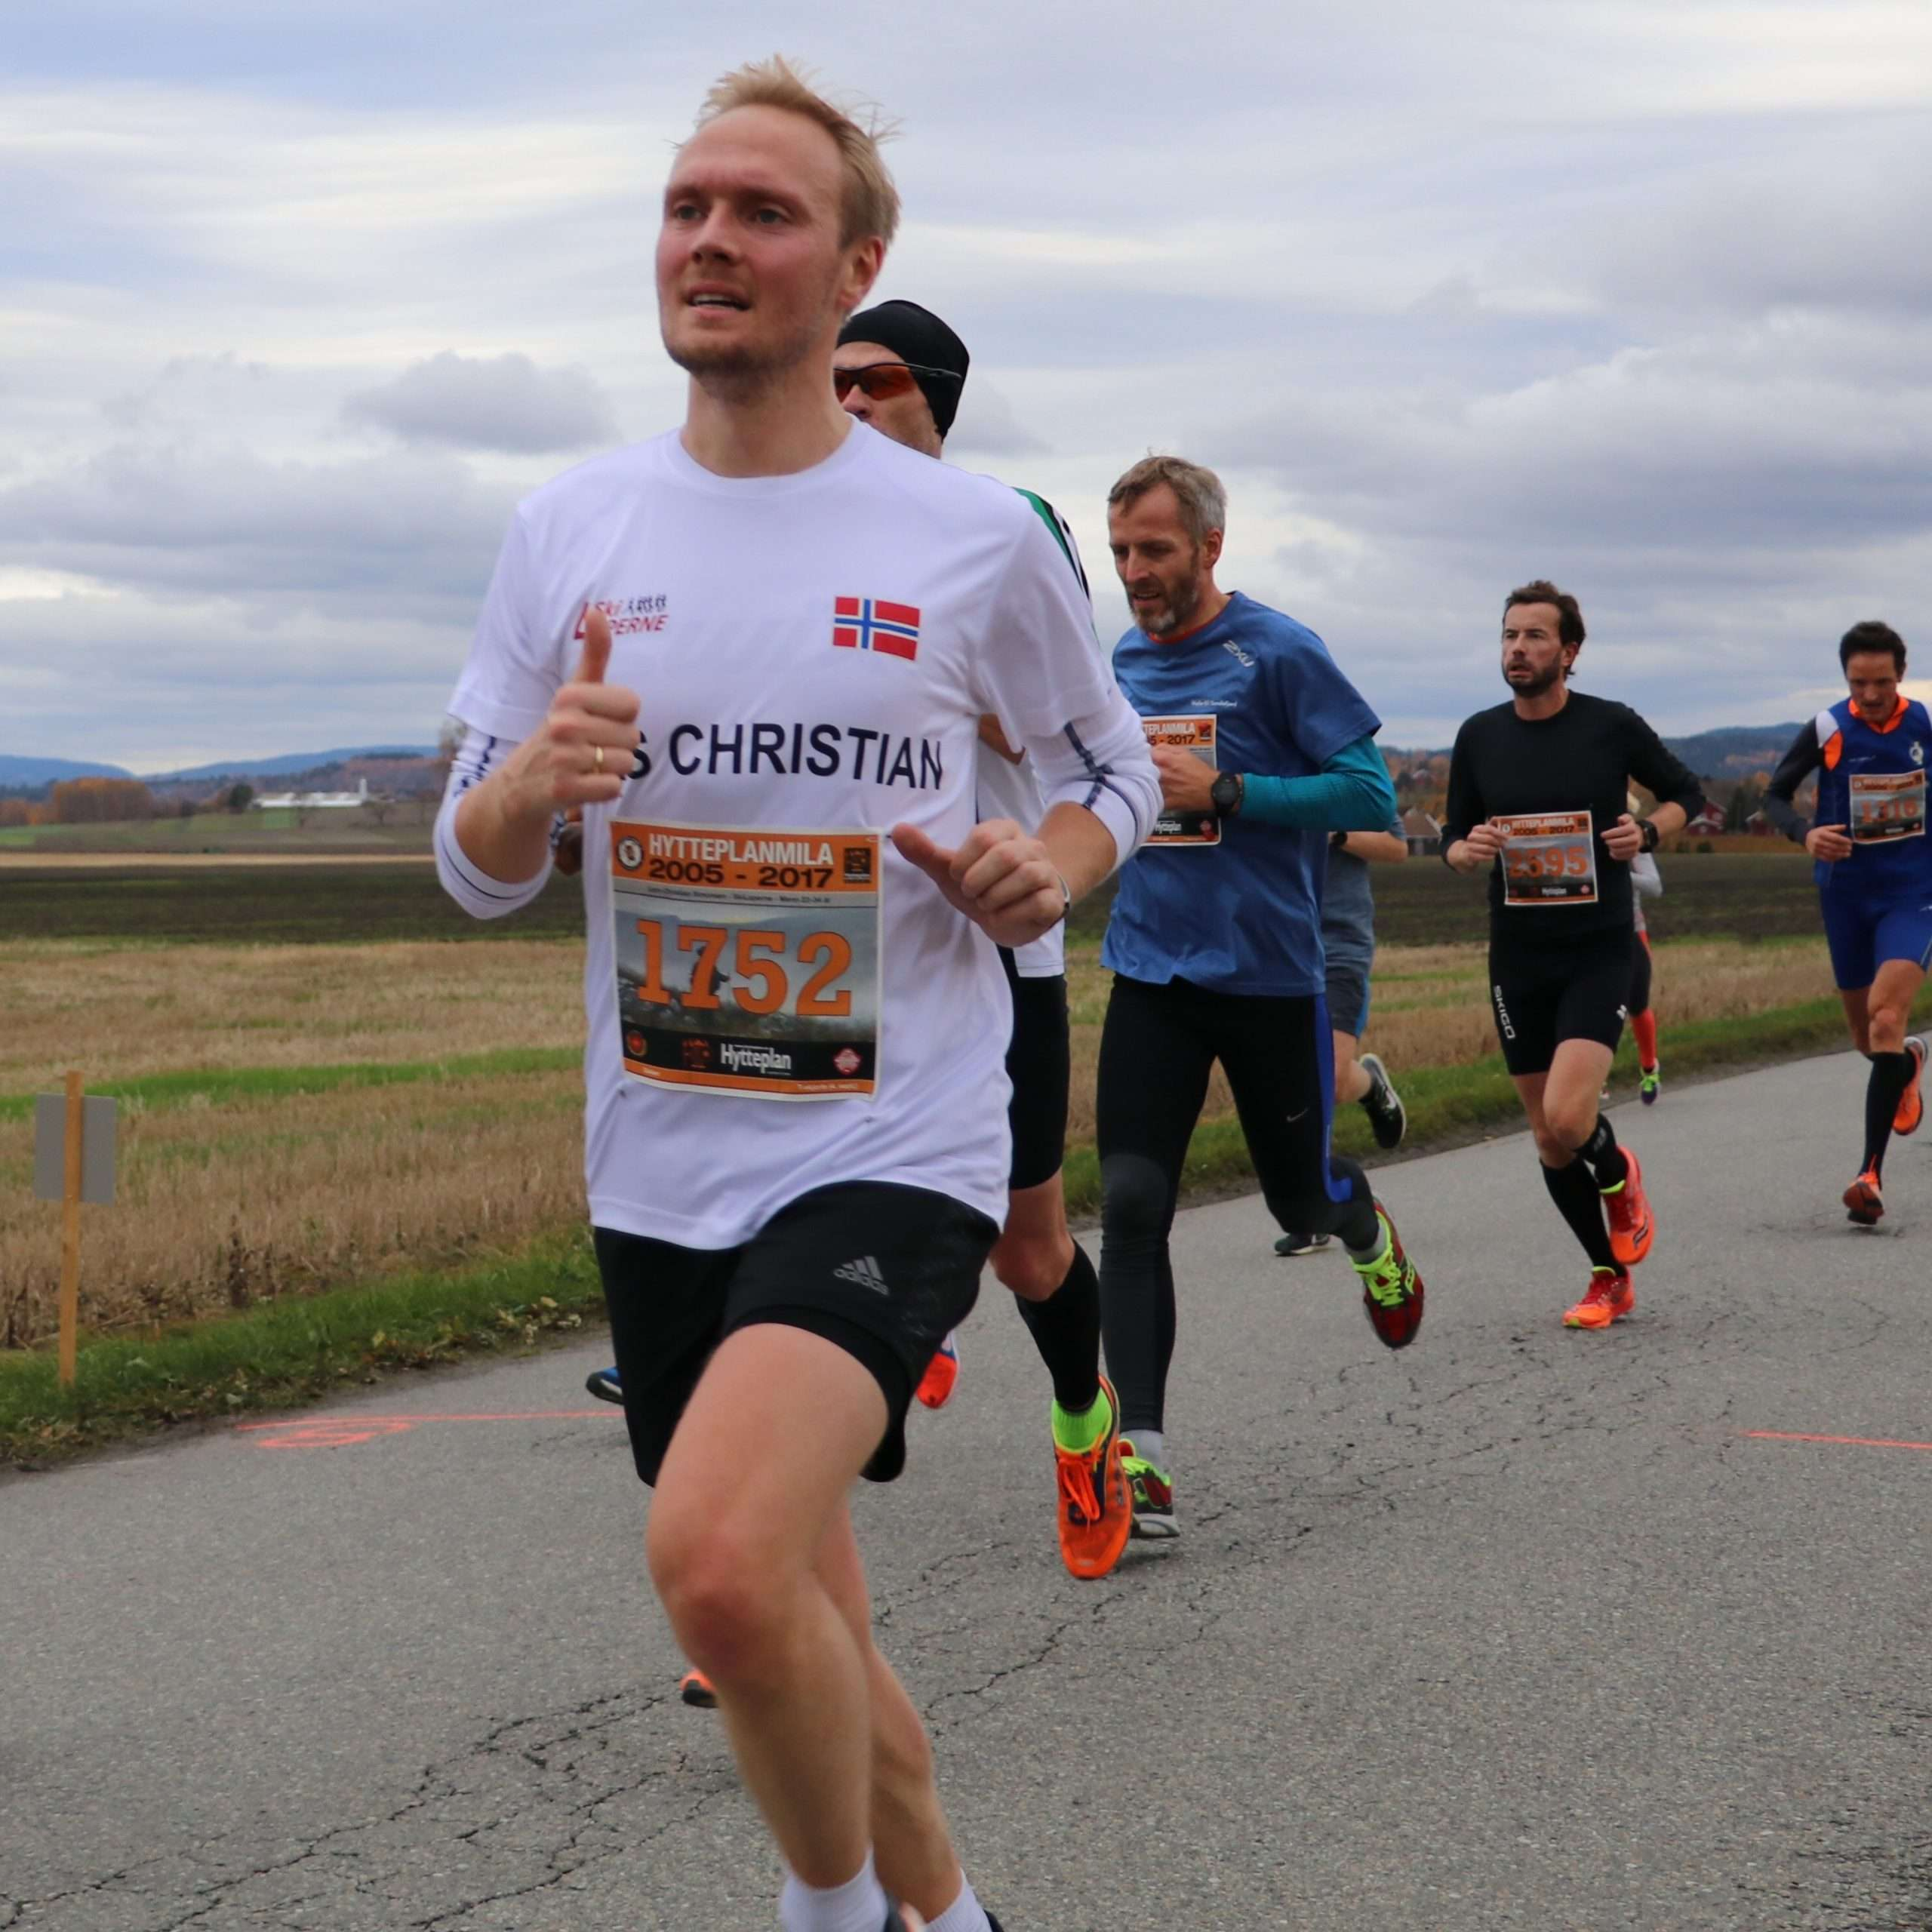 Runner at Hytteplanmila 2017